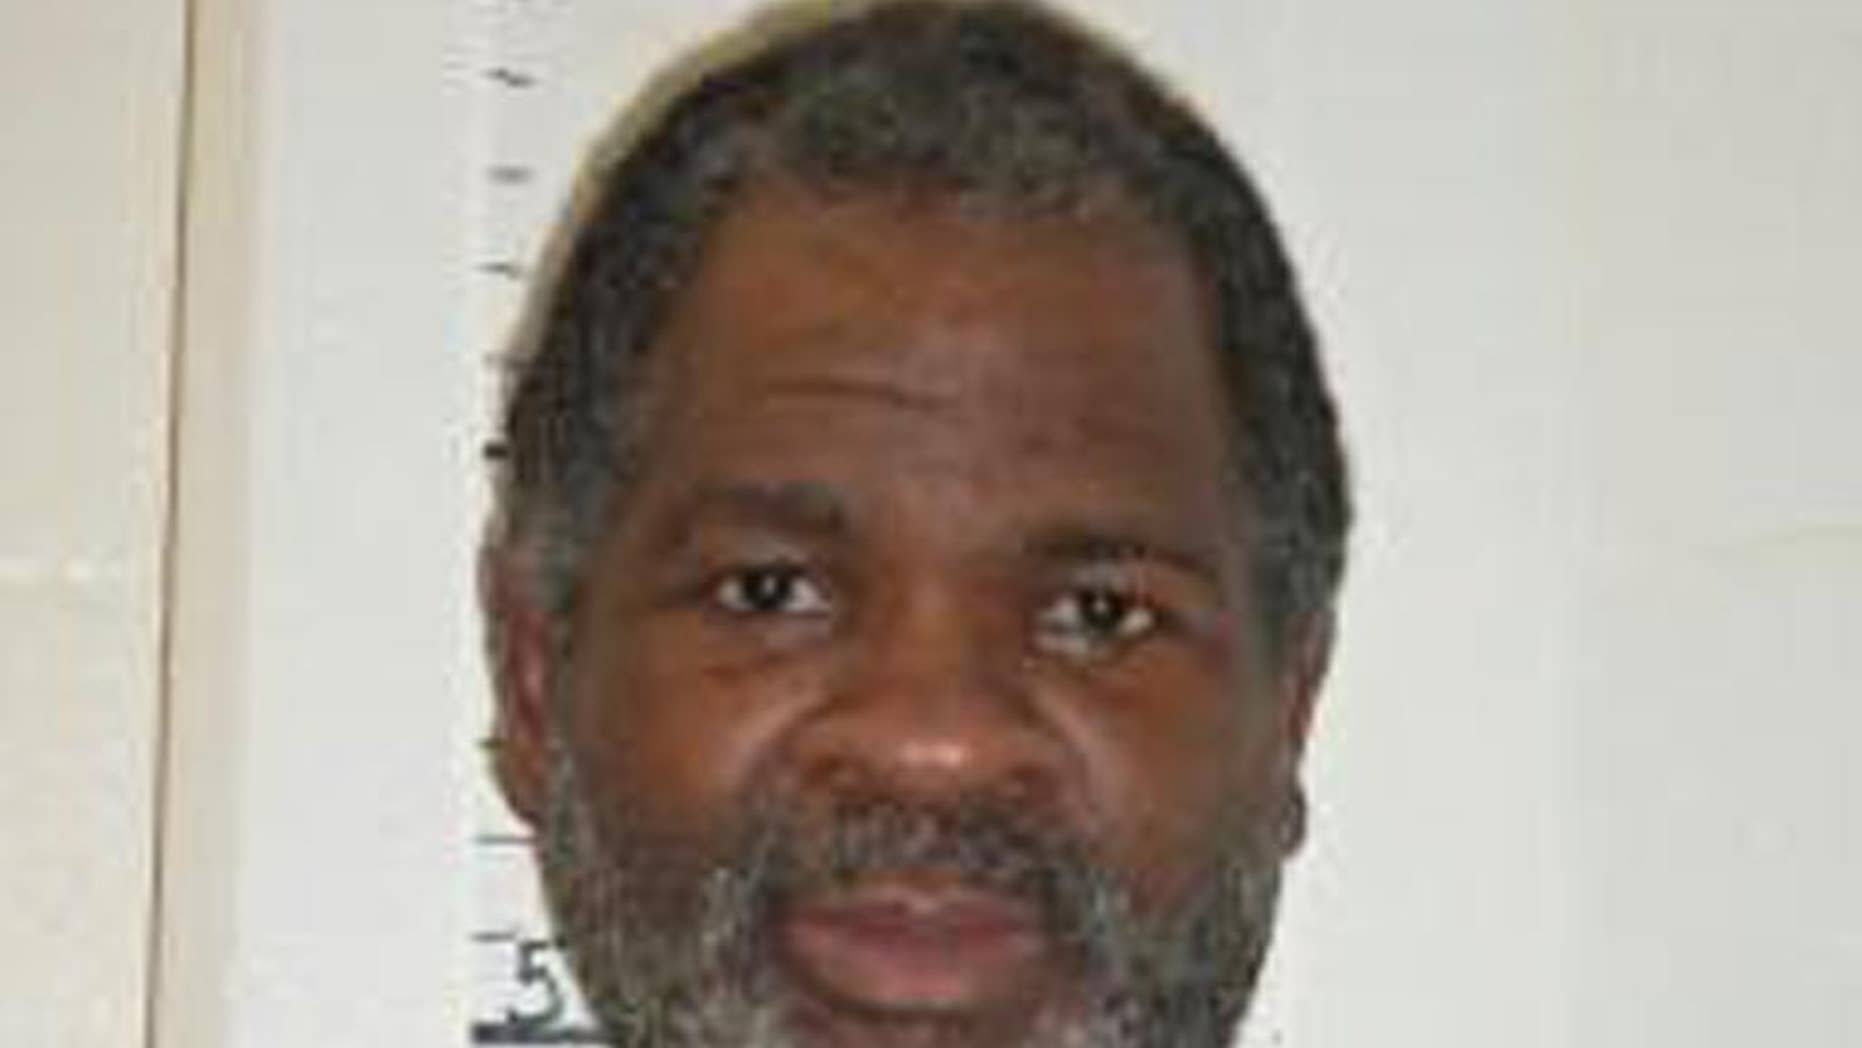 This Feb. 9, 2014 photo provided by the Missouri Department of Corrections shows Missouri death row inmate Richard Strong. Strong was convicted of fatally stabbing his girlfriend and her 2-year-old daughter 15 years ago in suburban St. Louis. (Missouri Department of Corrections via AP)